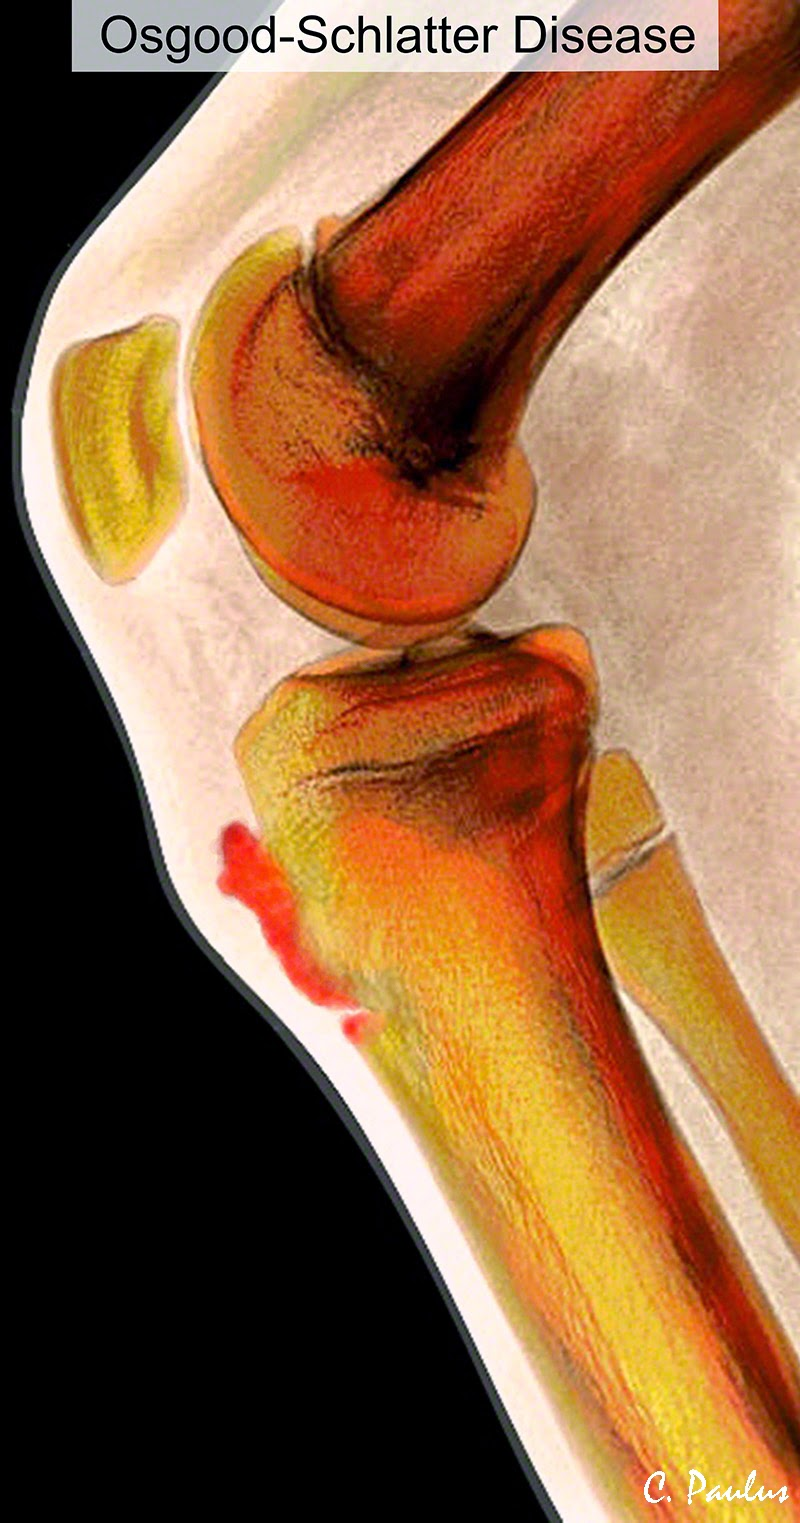 Lateral Color Knee X-Ray Image showing Osgood Schlatter Disease